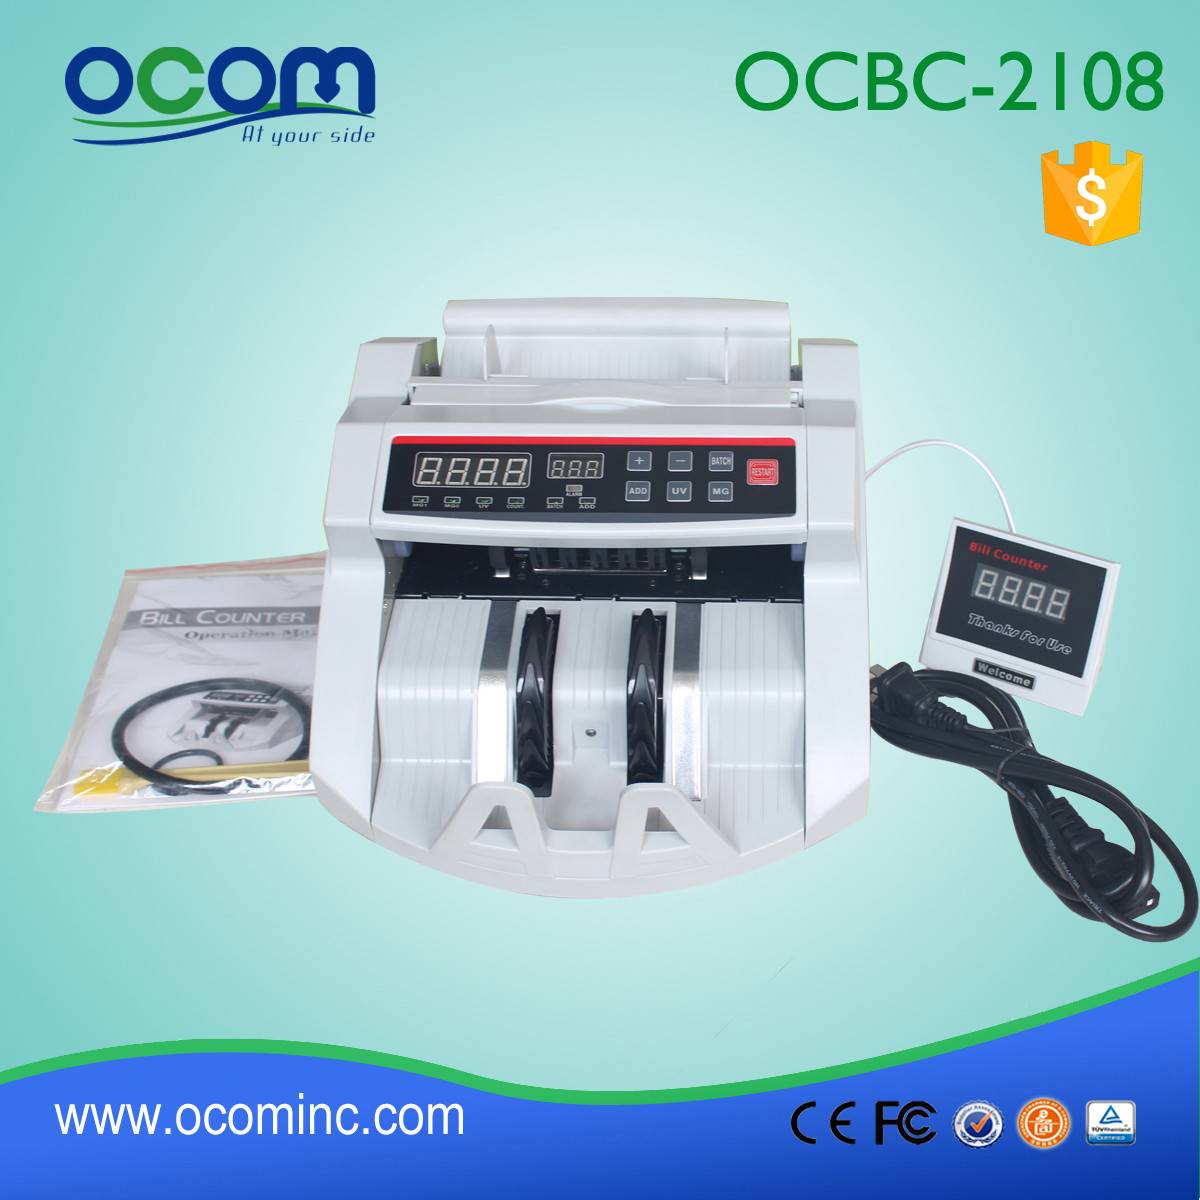 BC-2108: supermarket cash counter banknote counting machine